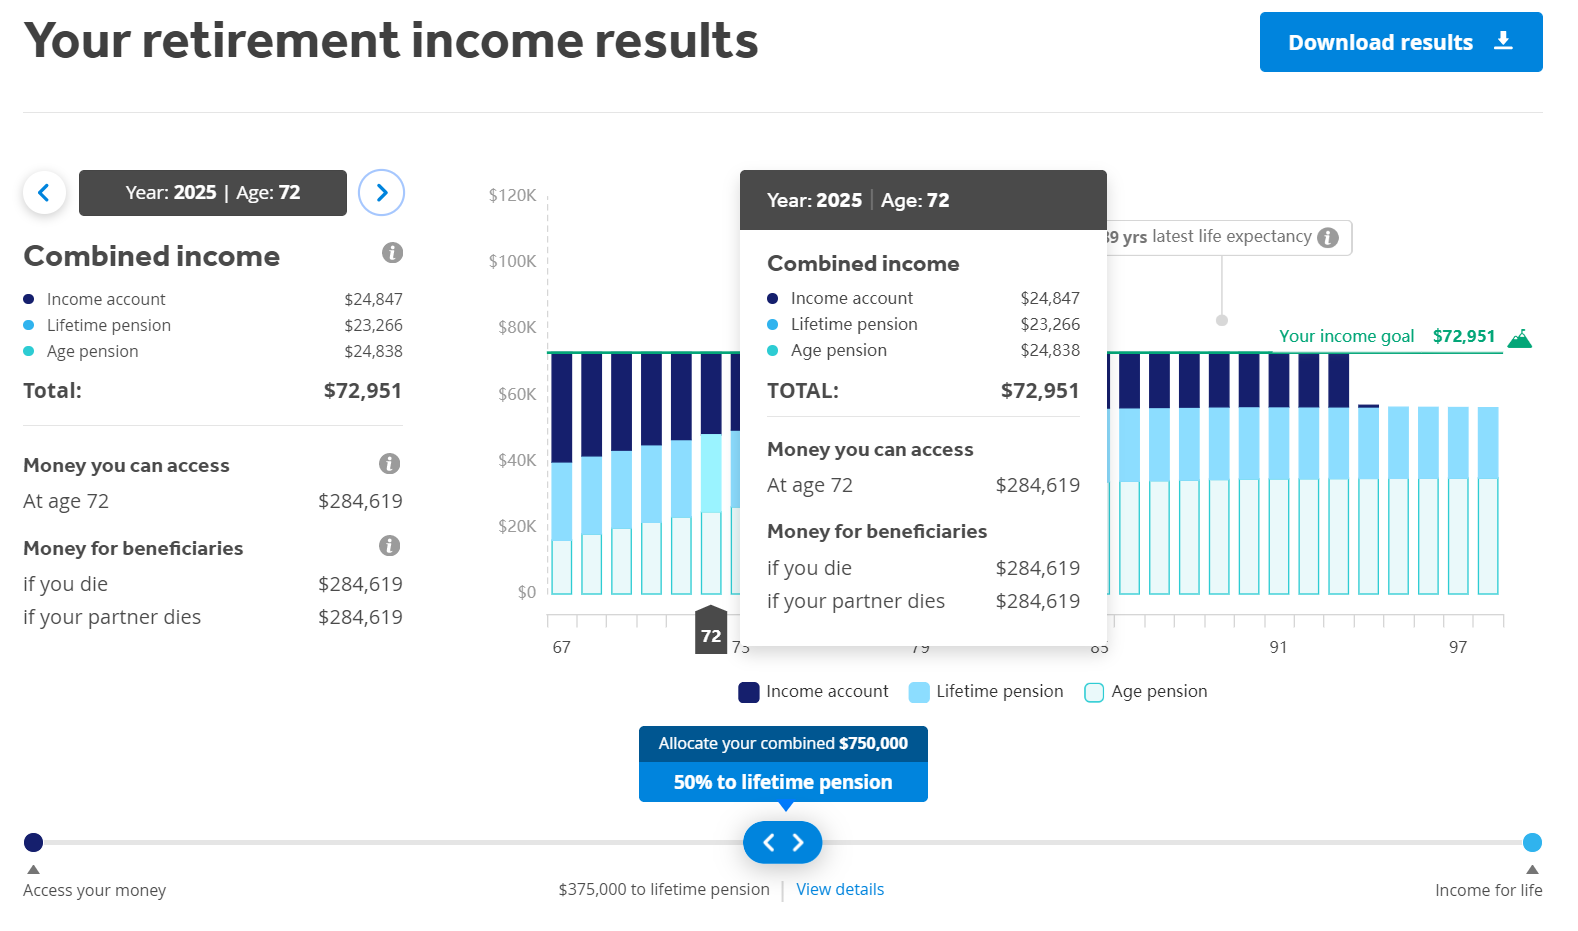 With QSuper's Retirement Calculator you can view an estimate of your client's potential income levels including their account-based pension, Lifetime Pension and potential Age Pension entitlements. The projected figures aren't guaranteed. They are provided as an illustration only and may vary from actual results. They are based on a set of assumptions and eligibility criteria being met. Refer to the QSuper website for more information.